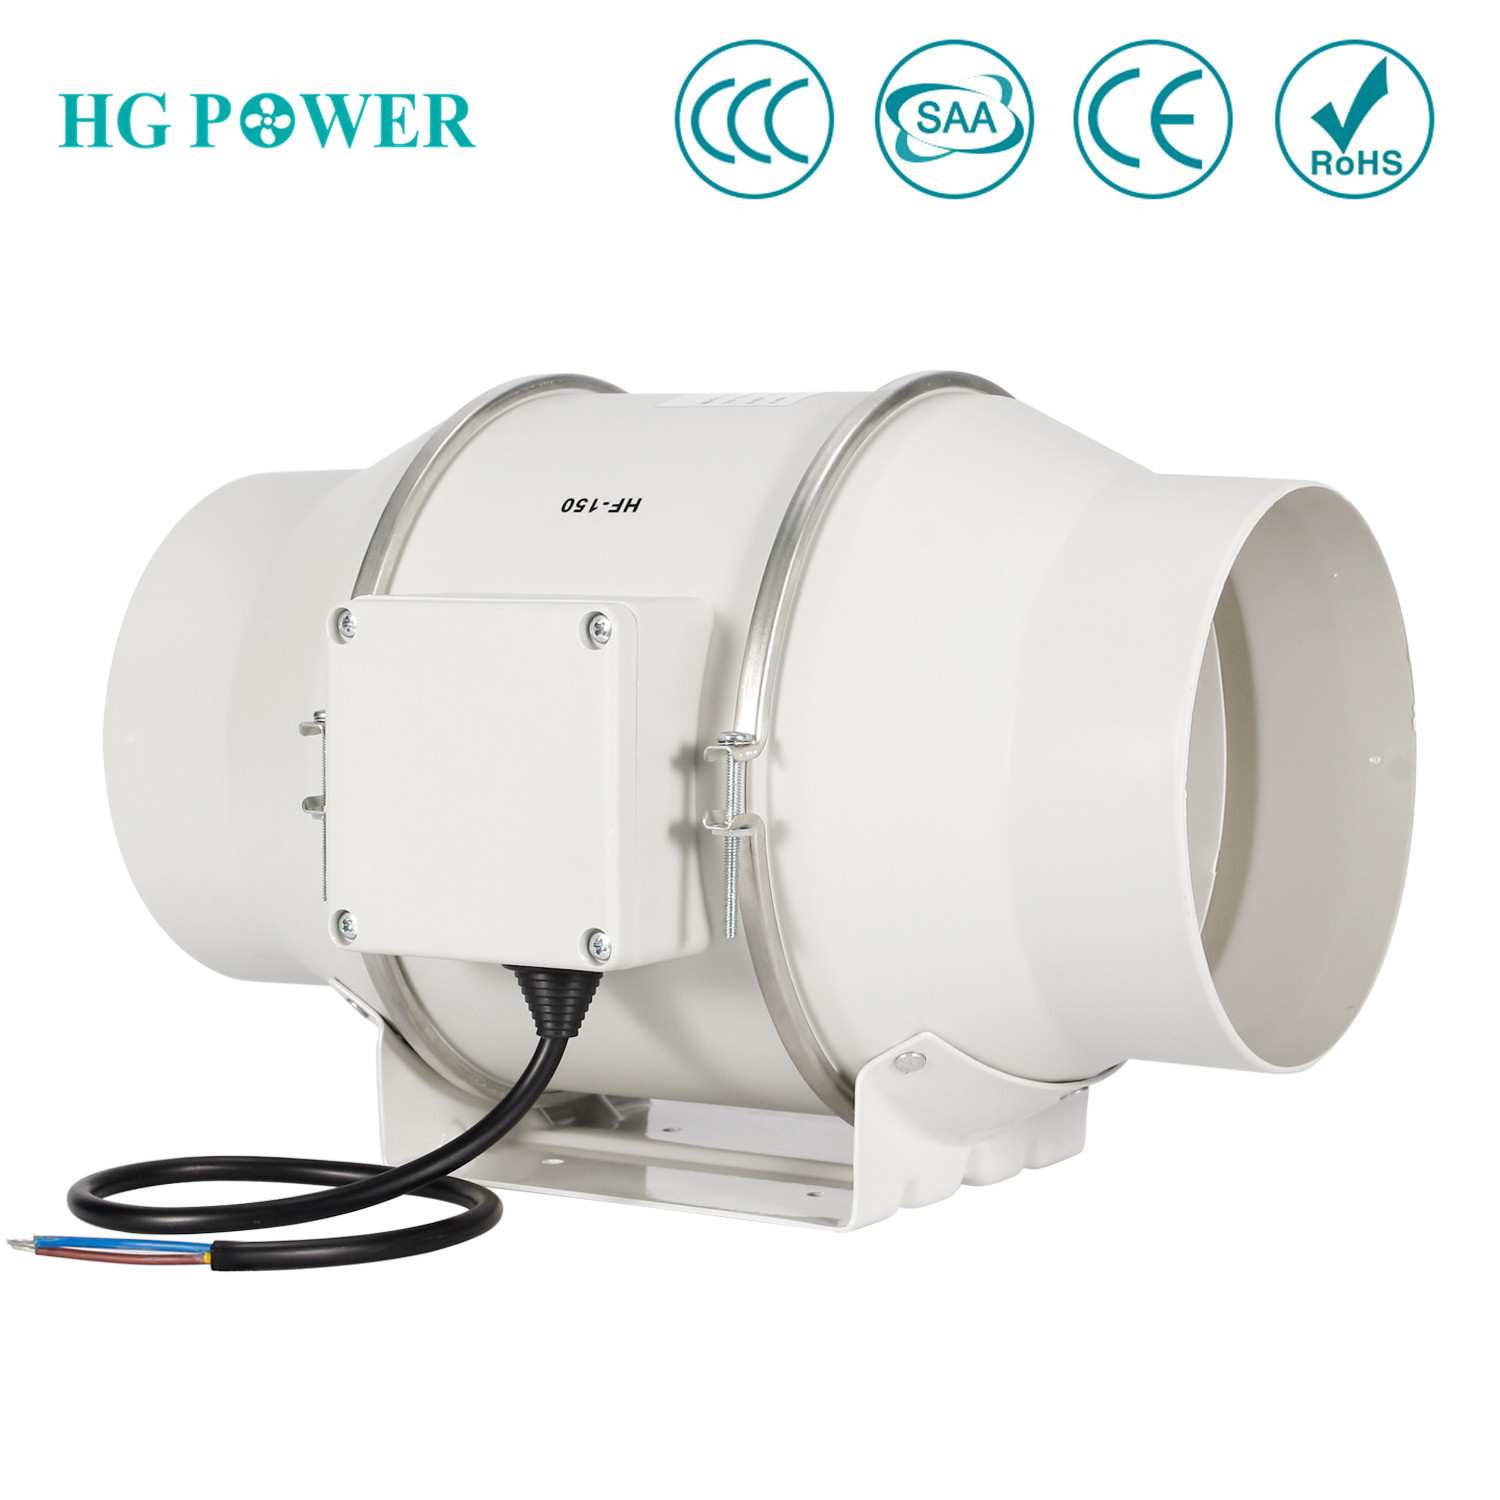 6 150mm High Efficiency Inline Duct Fan Exhaust Fan Mixed Flow Hydroponic Air Blower for Home